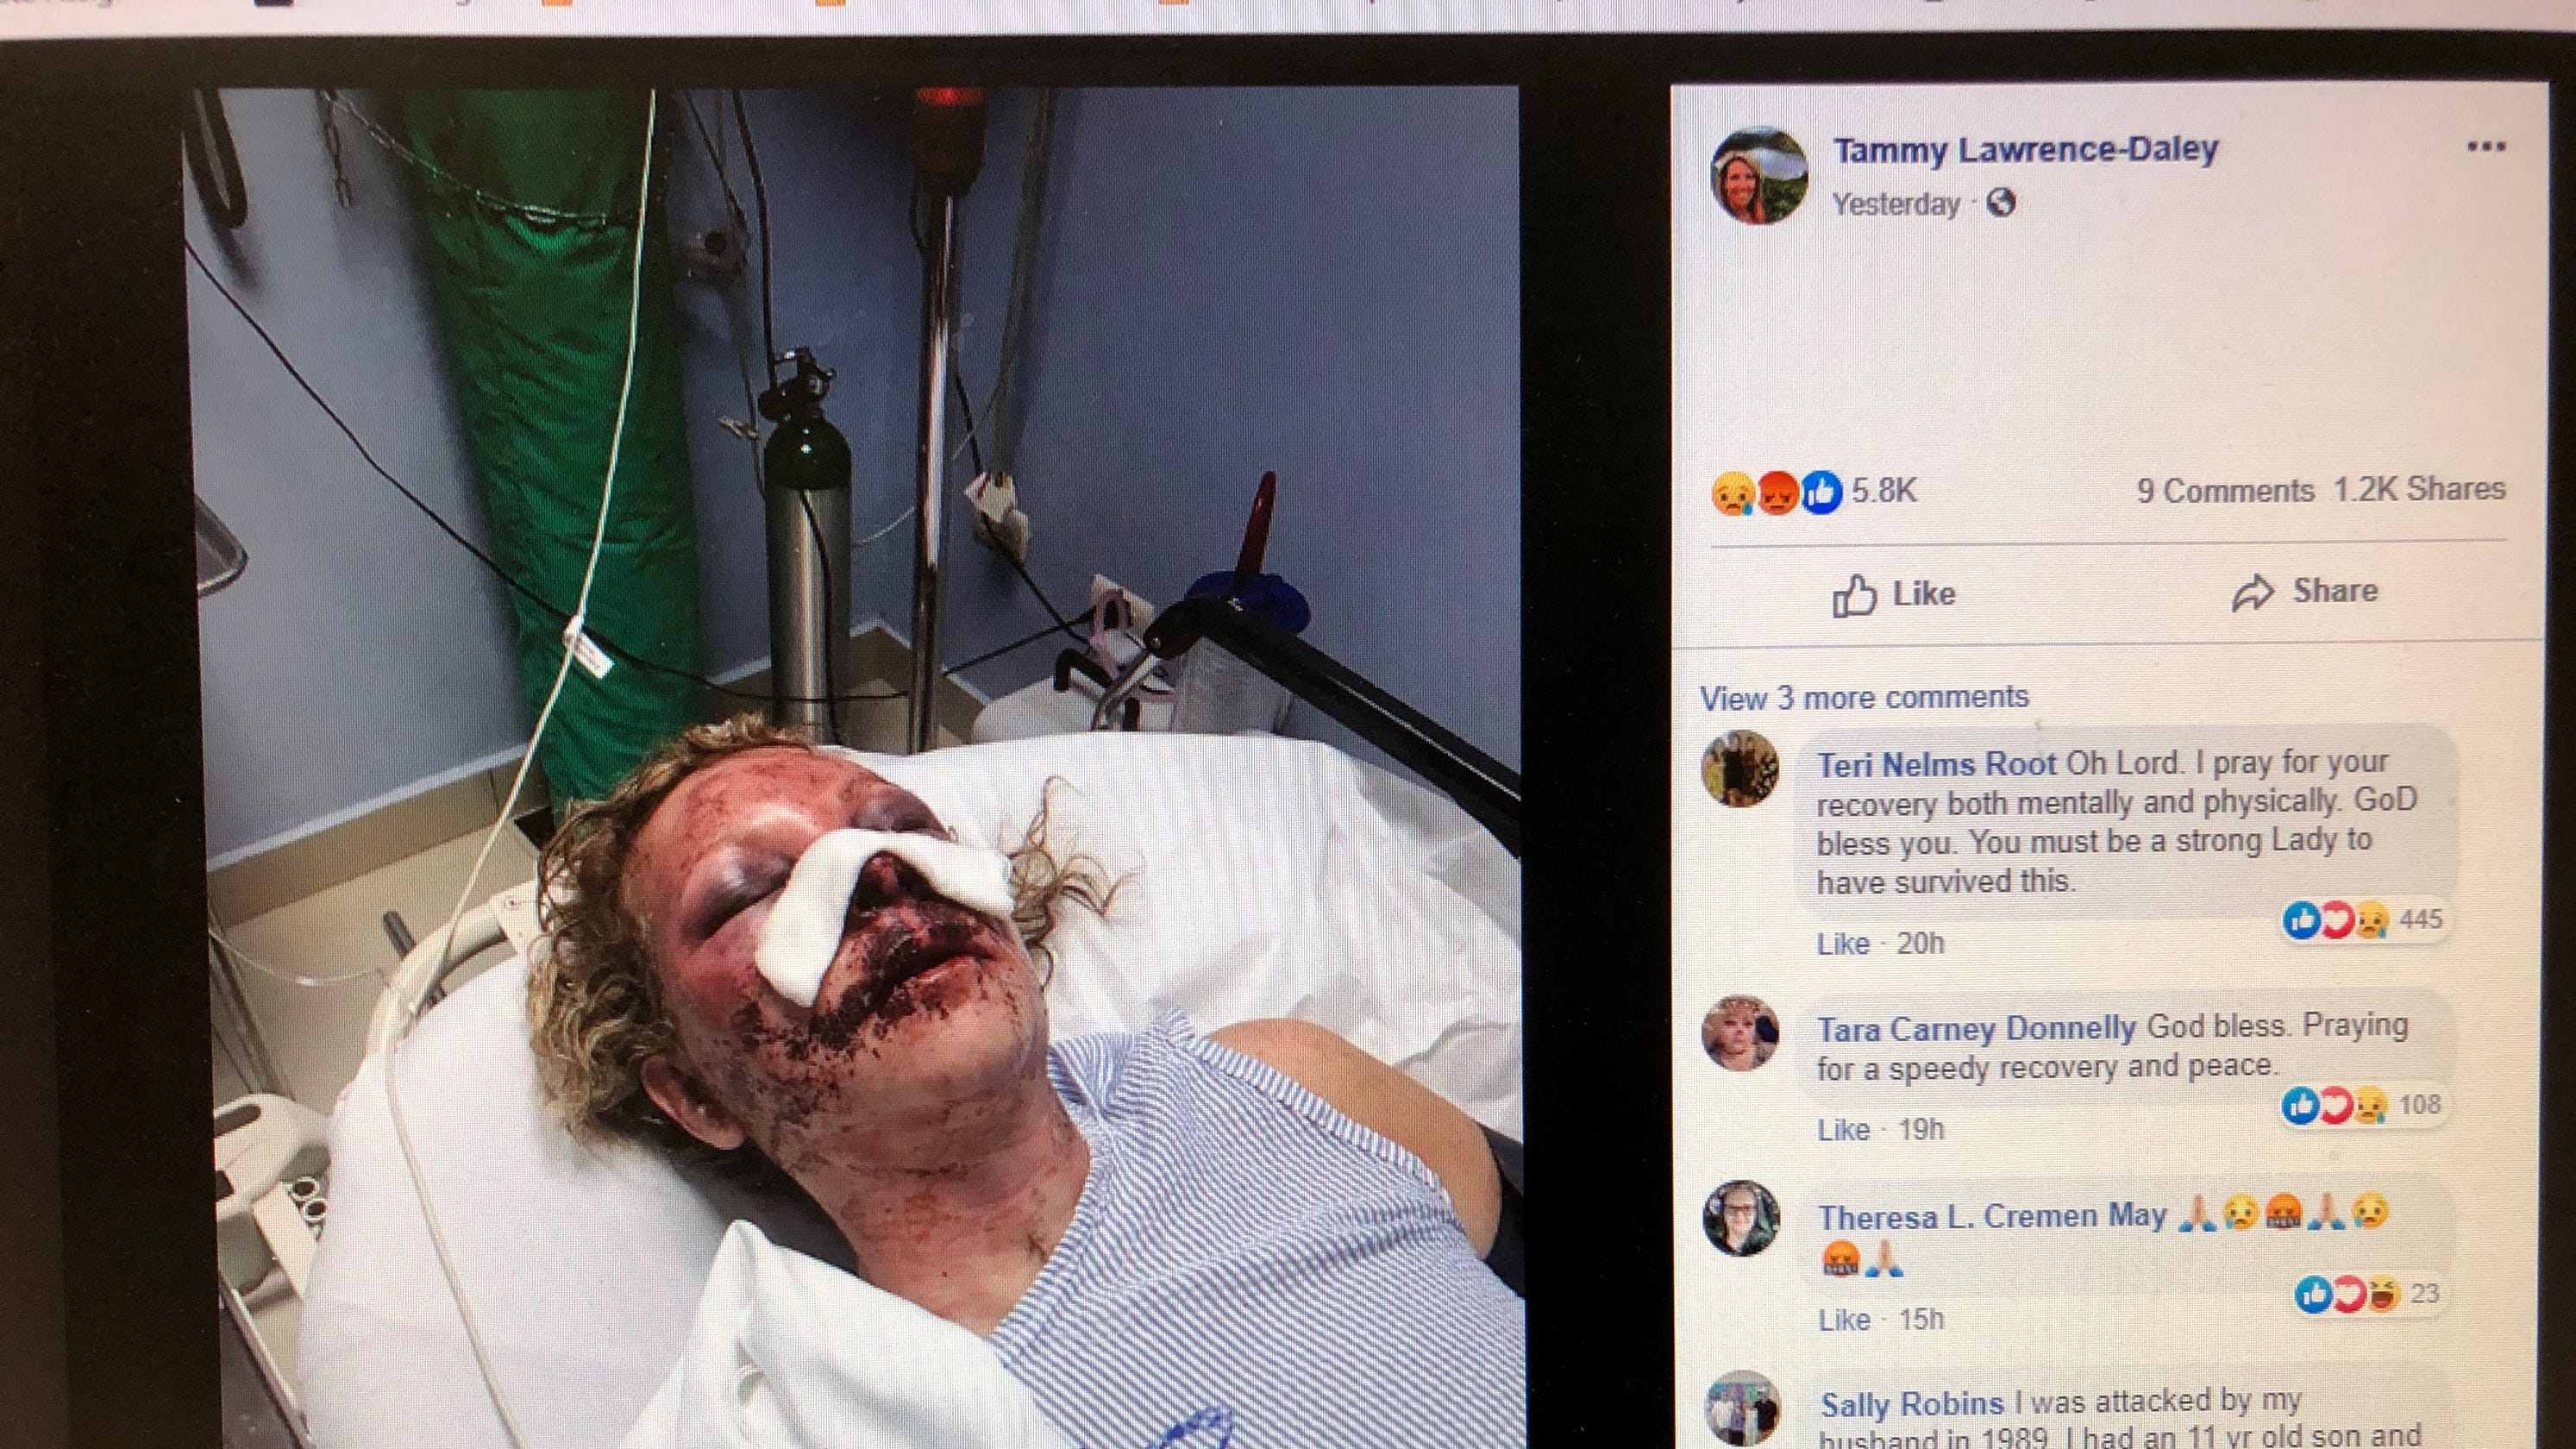 Wilmington woman recounts attack in viral Facebook post